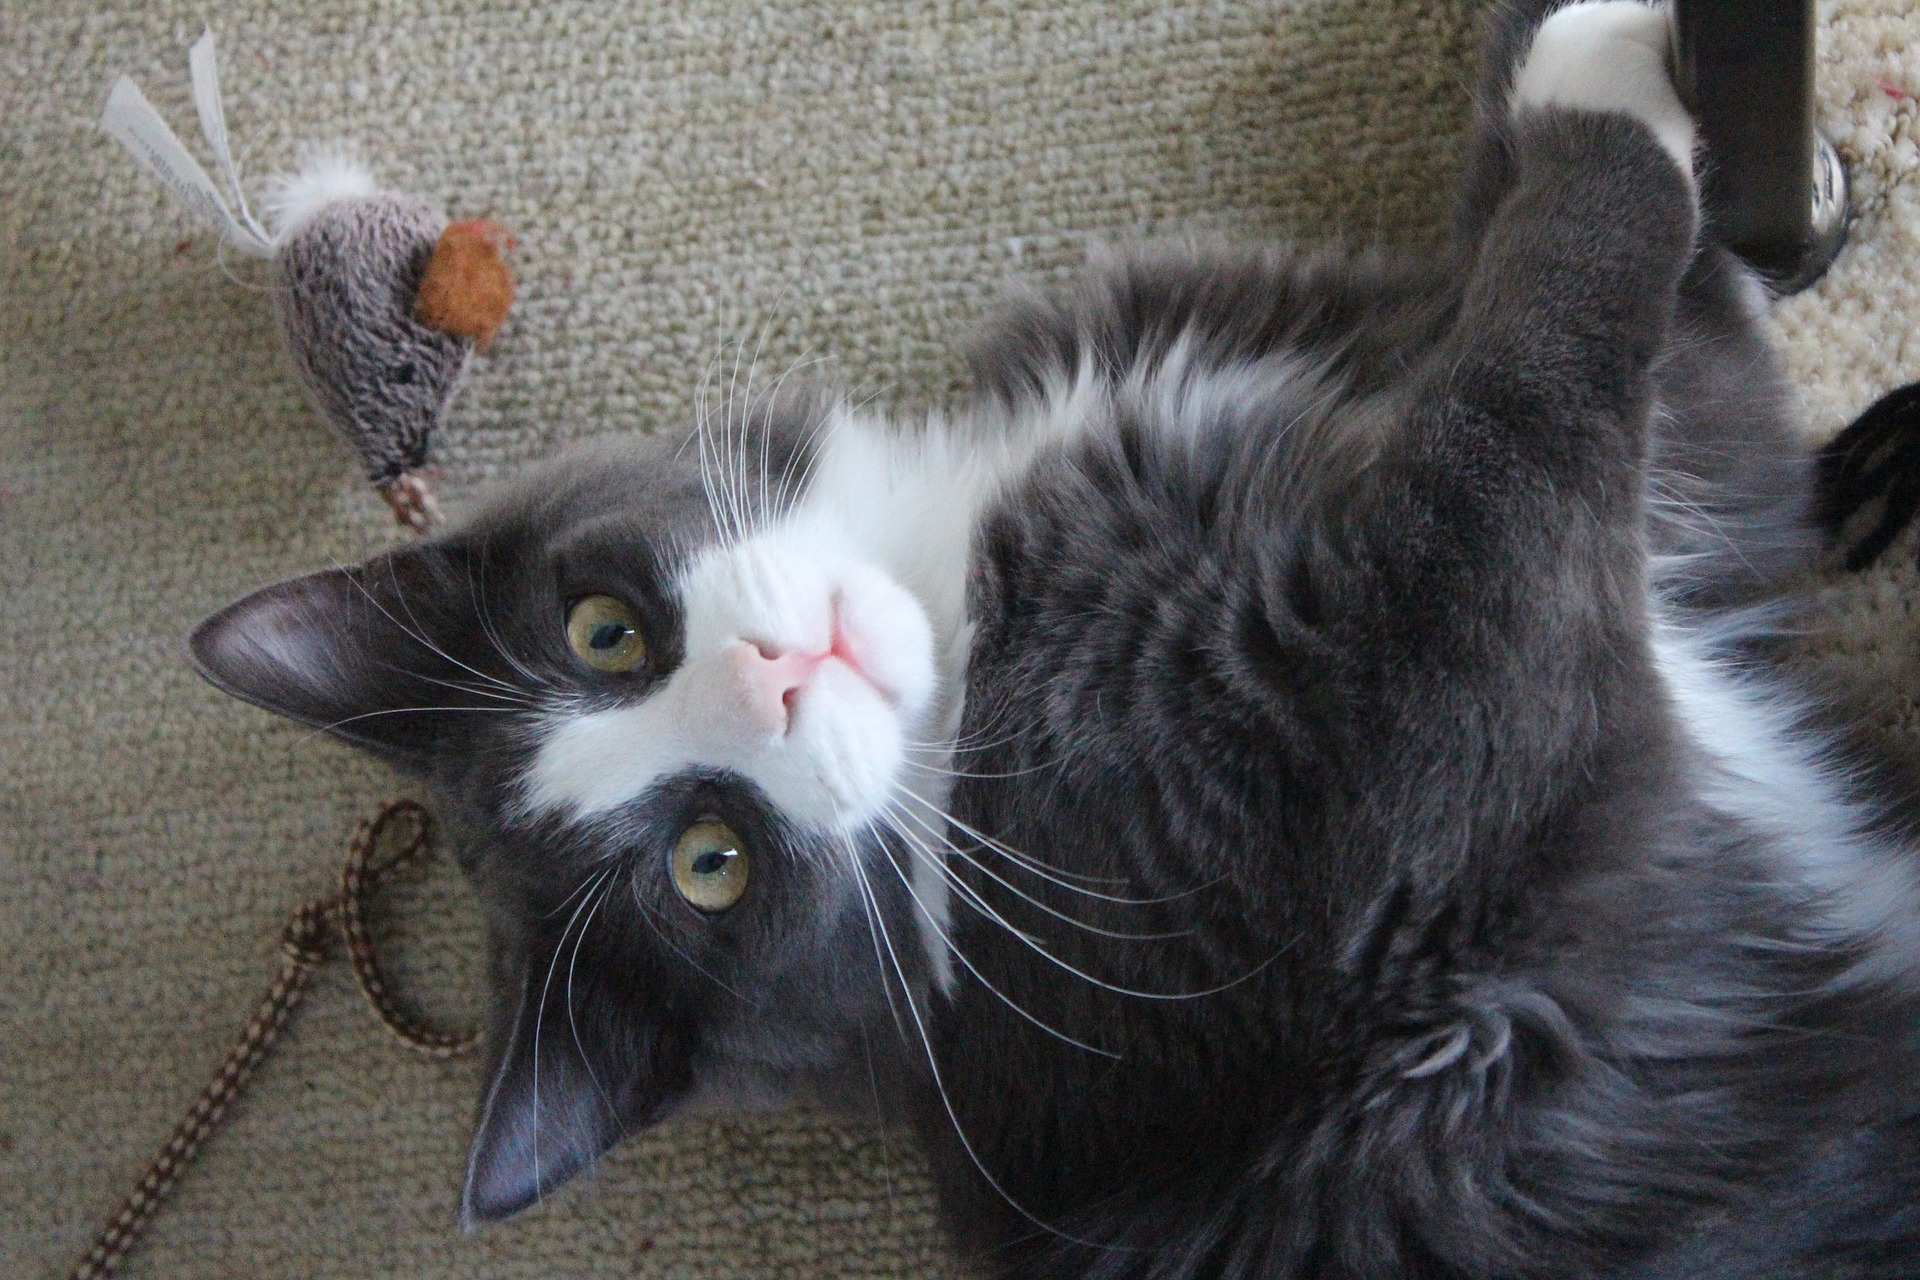 cat playing with feather toy and looking at camera